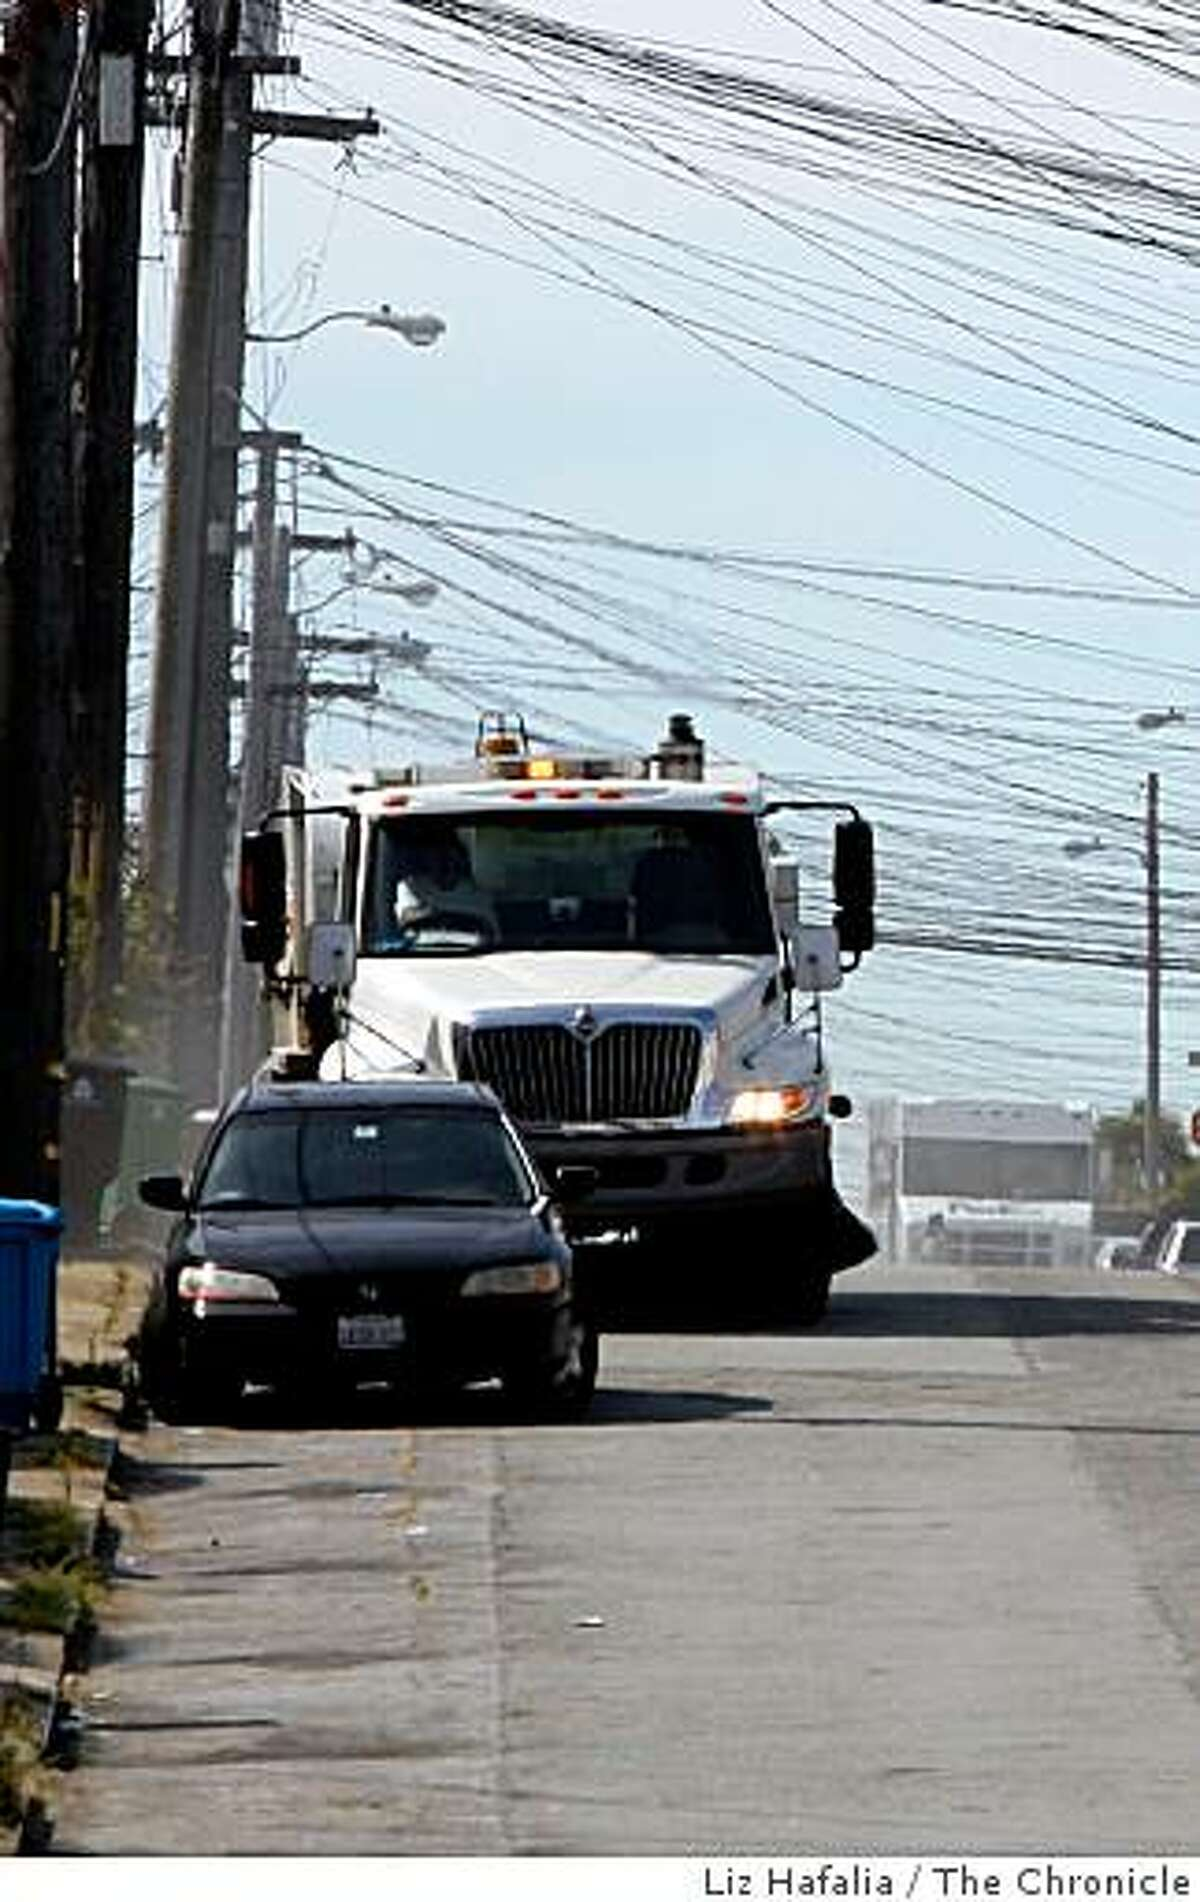 Parking ticket revenue dropped 26 percent last fall when there was a cut in street sweeping last year. Streetsweeper passes a ticketed vehicle on 35th Ave. near Lincoln Blvd. in San Francisco, Calif., on Tuesday, April 21, 2009.